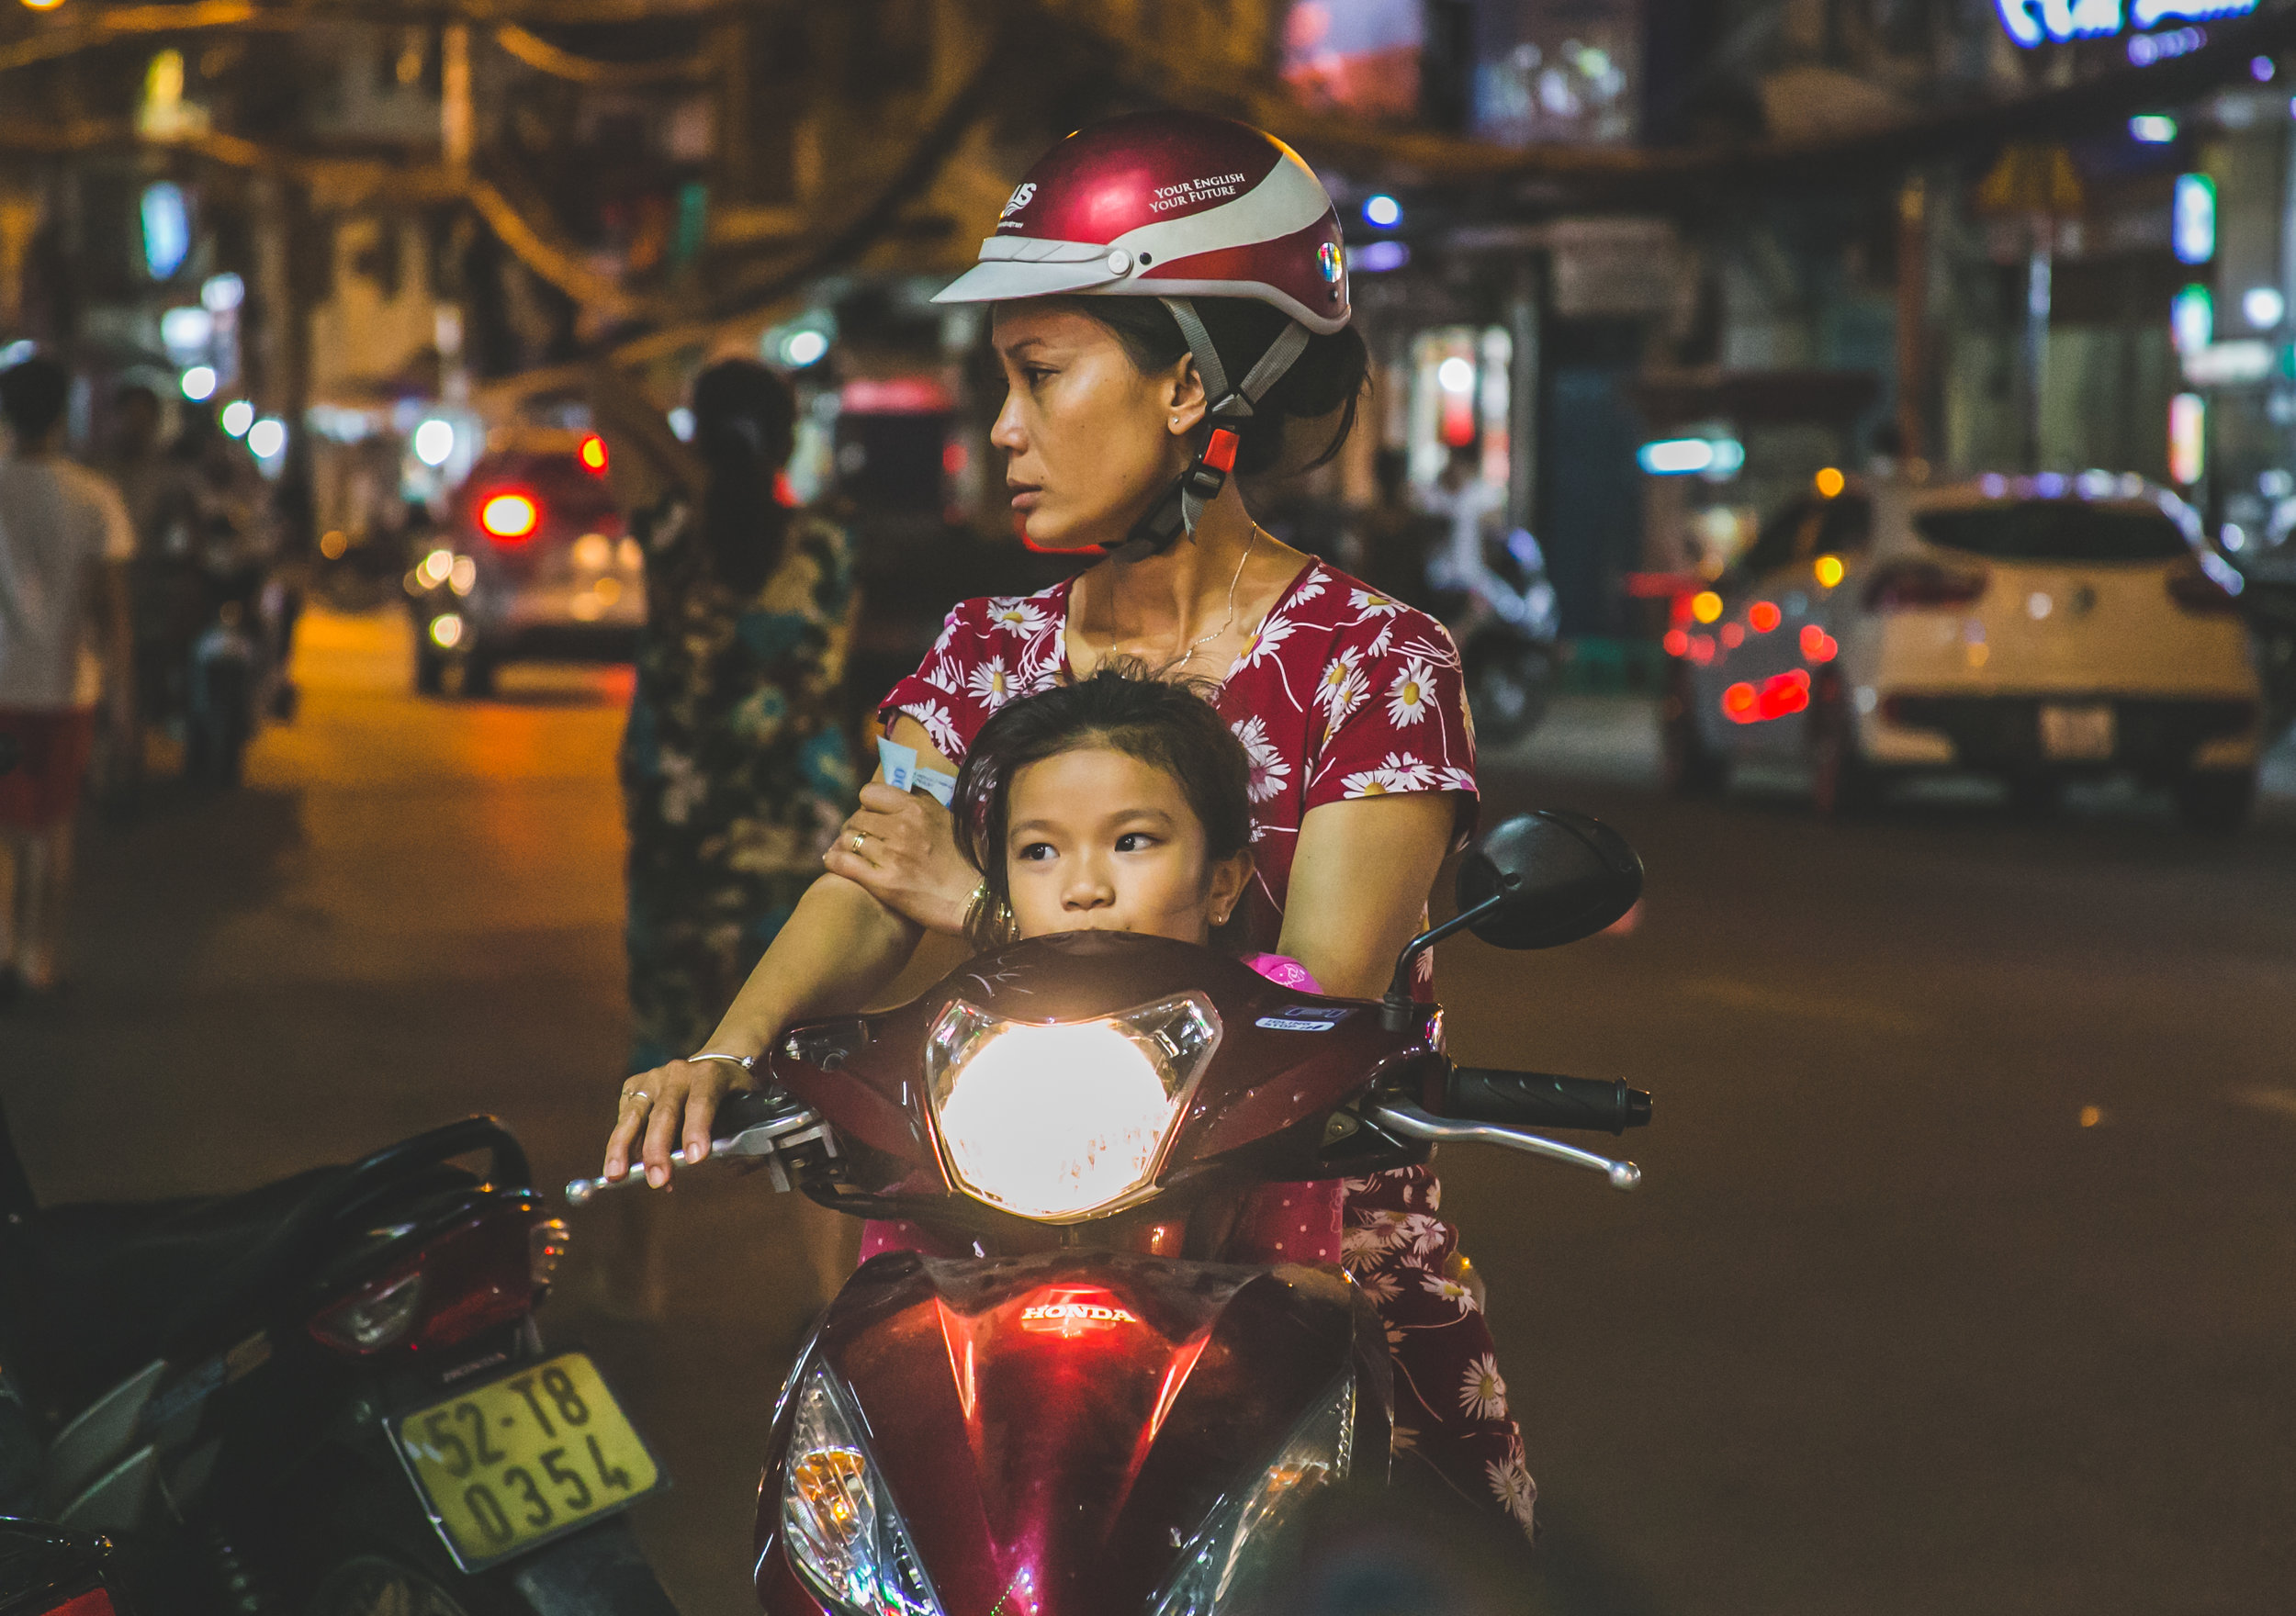 1:23am - A girl rides with her mother on a motorcycle throughout the streets of Ho Chi Minh City, Vietnam.     Ho Chi Minh now boasts over 7.43 million active motorcycles on its streets. Traffic accidents remain one of the highest causes of death in Vietnam - 30 times the number of people killed by pandemic diseases. In 2015 - 702 people were killed and 3,302 injured.